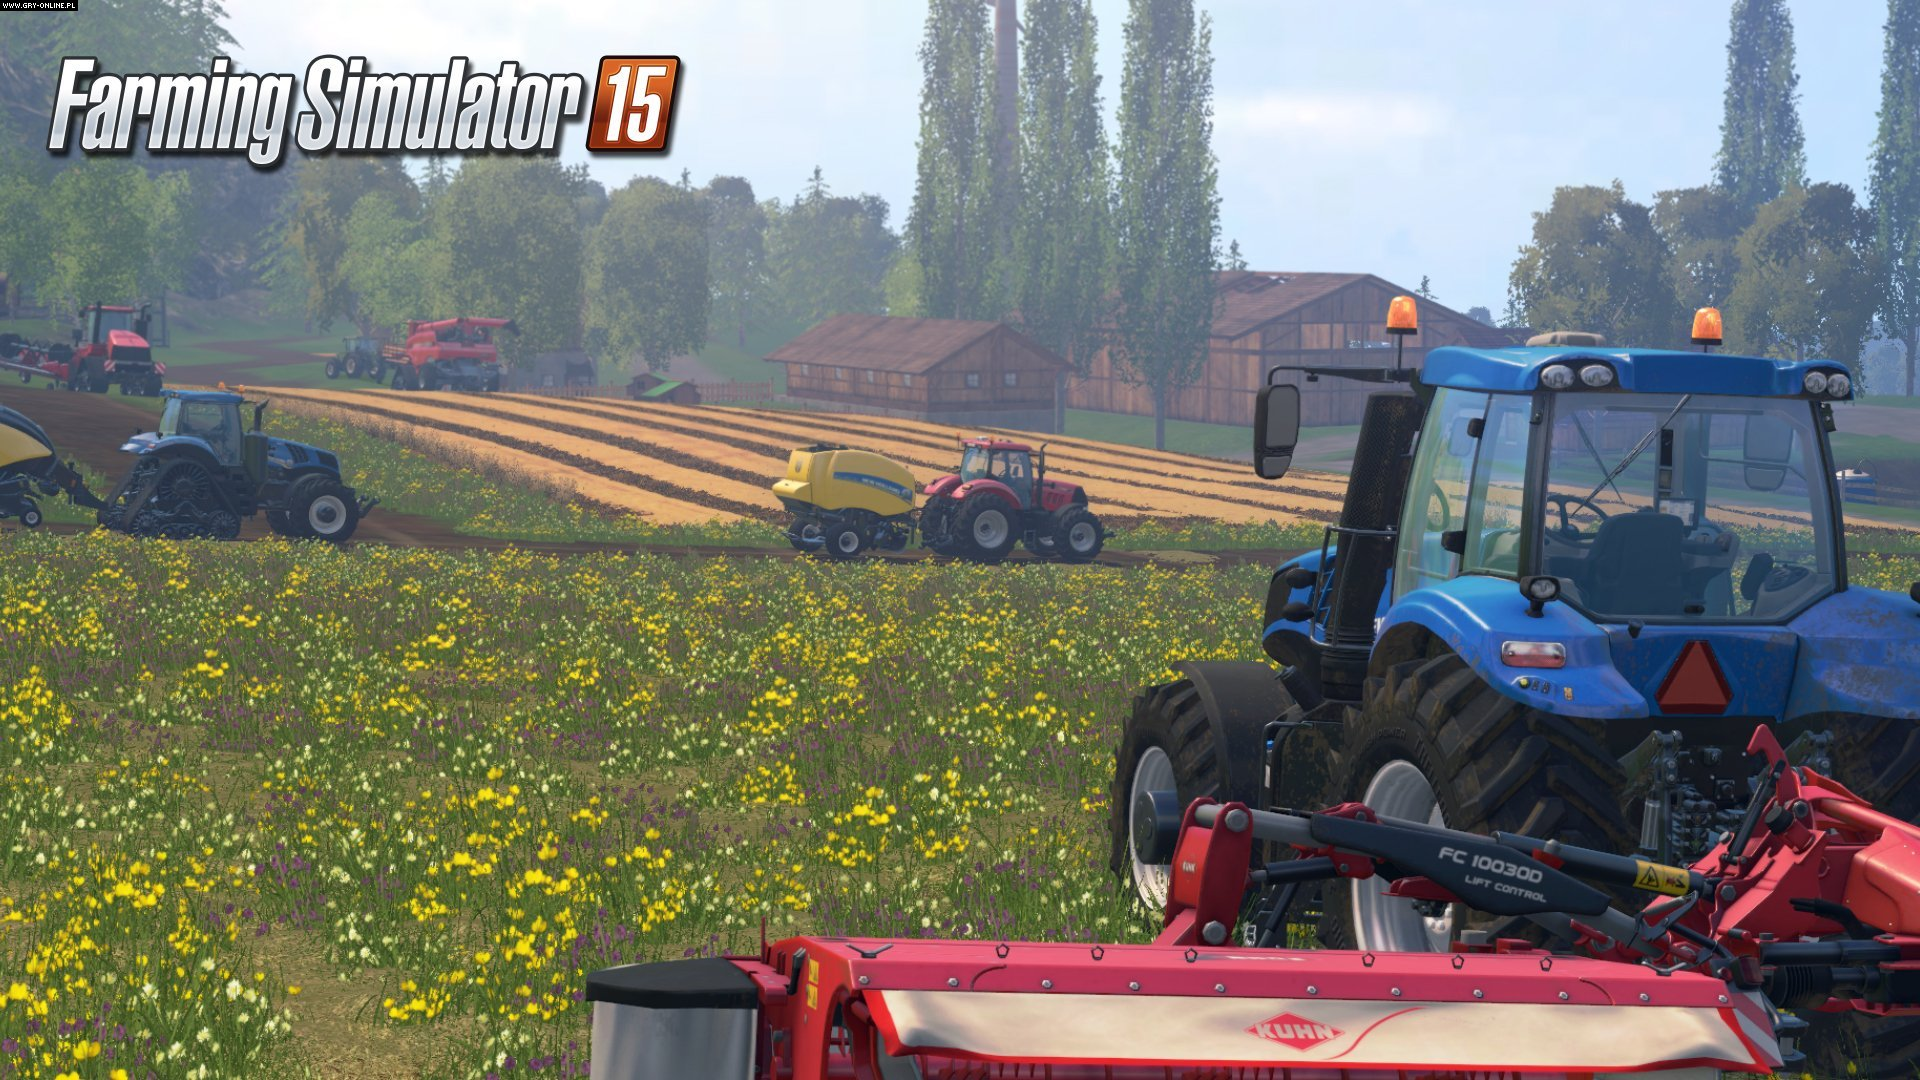 Farming Simulator 15 PC, X360, PS3, XONE, PS4 Games Image 1/14, GIANTS Software, Focus Home Interactive